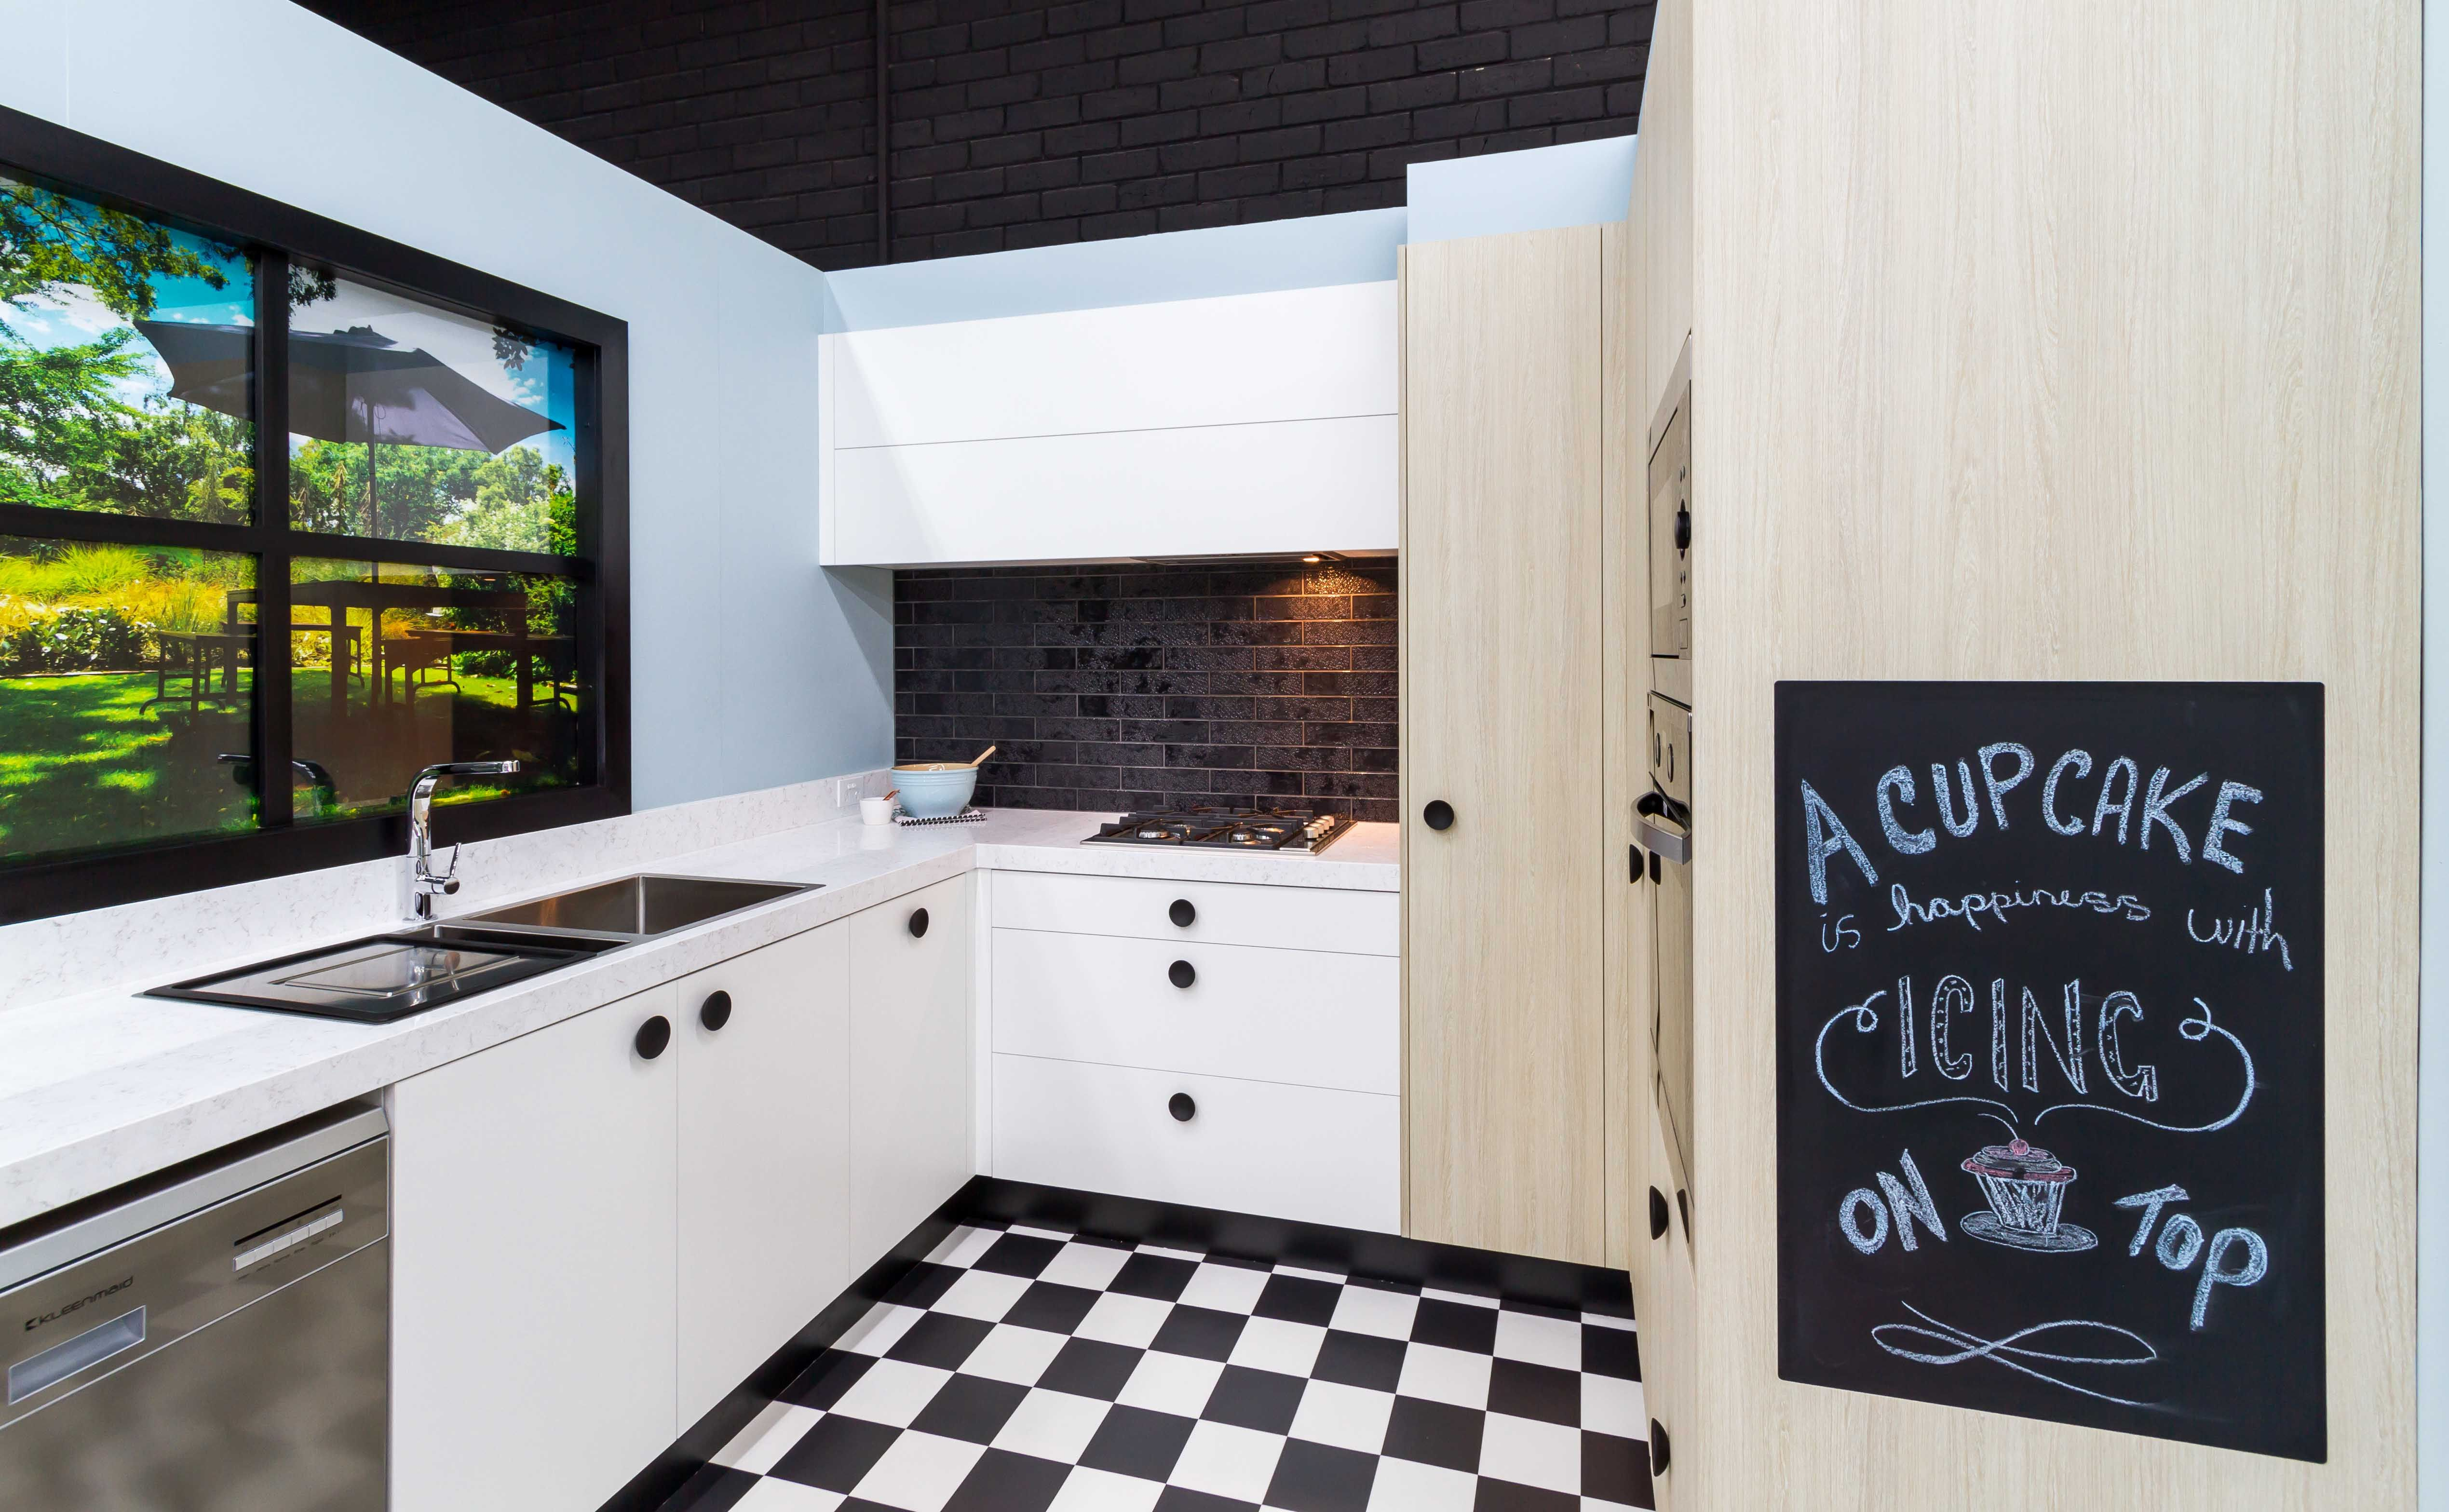 Laminex Design Hub has sponsored this kitchen to create a Vintage ...